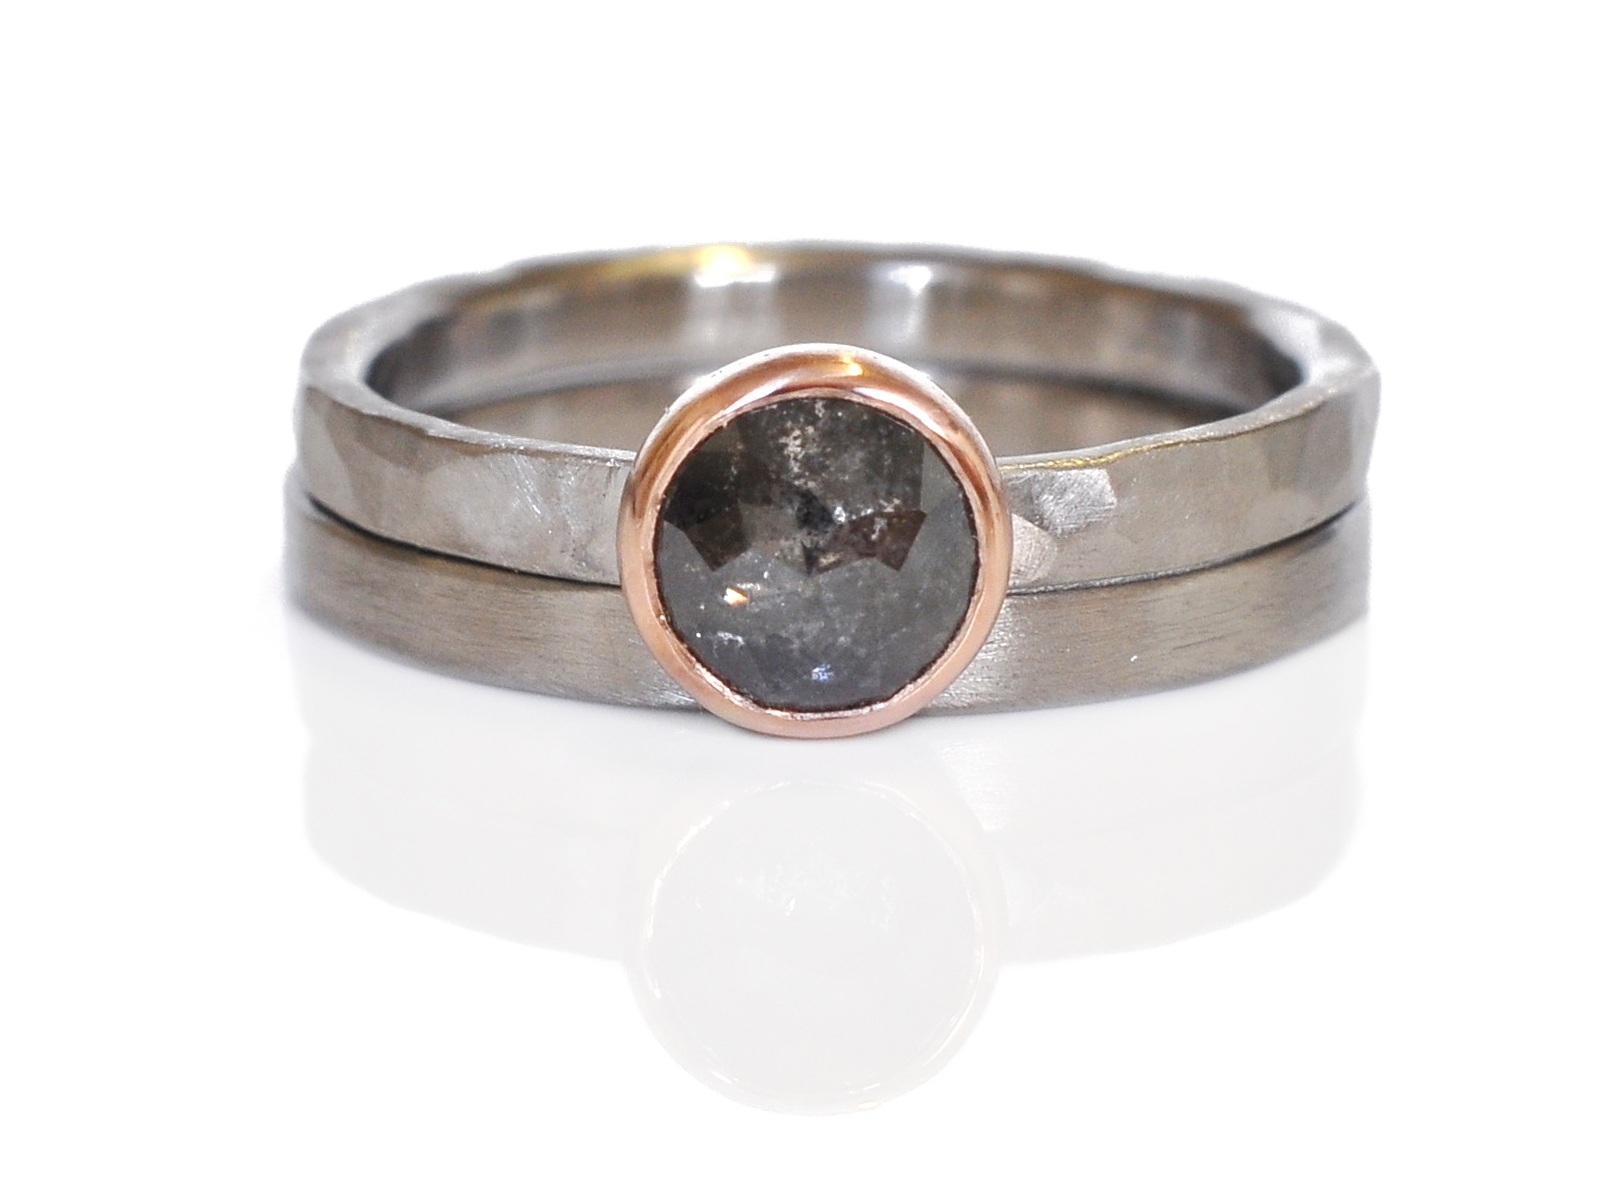 Dark and moody with a pop of pink! Erin picked out a salt and pepper diamond in 14k red gold and paired it with mixed textures of 500 palladium.